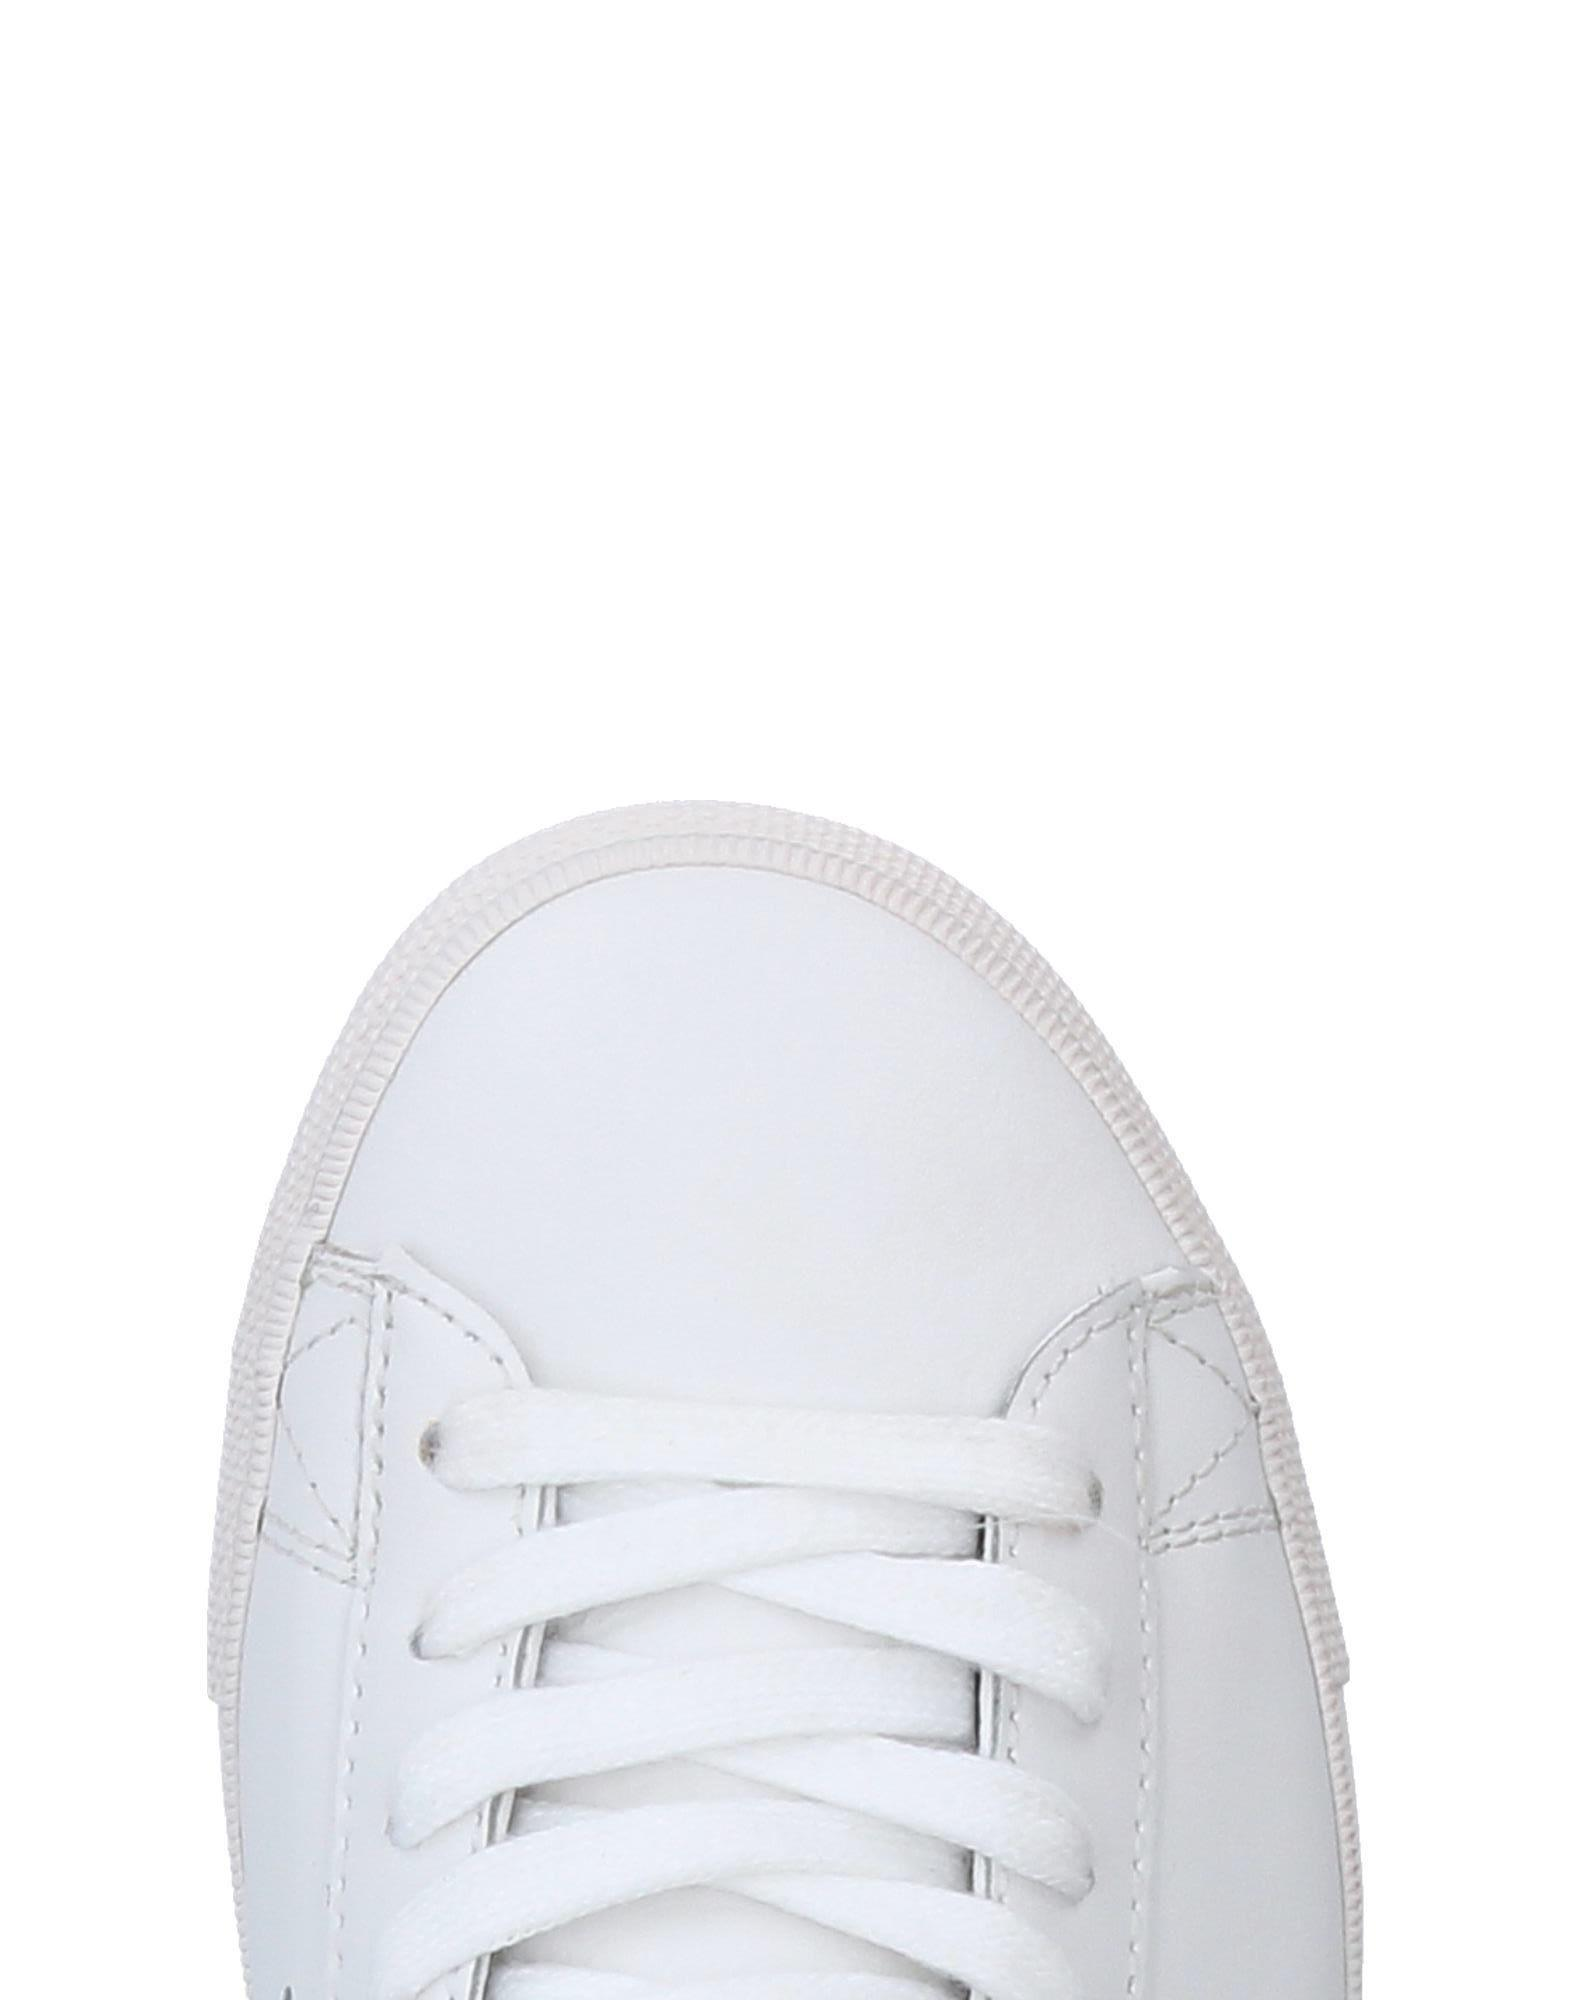 Product Of New York Leather High-tops & Sneakers in White